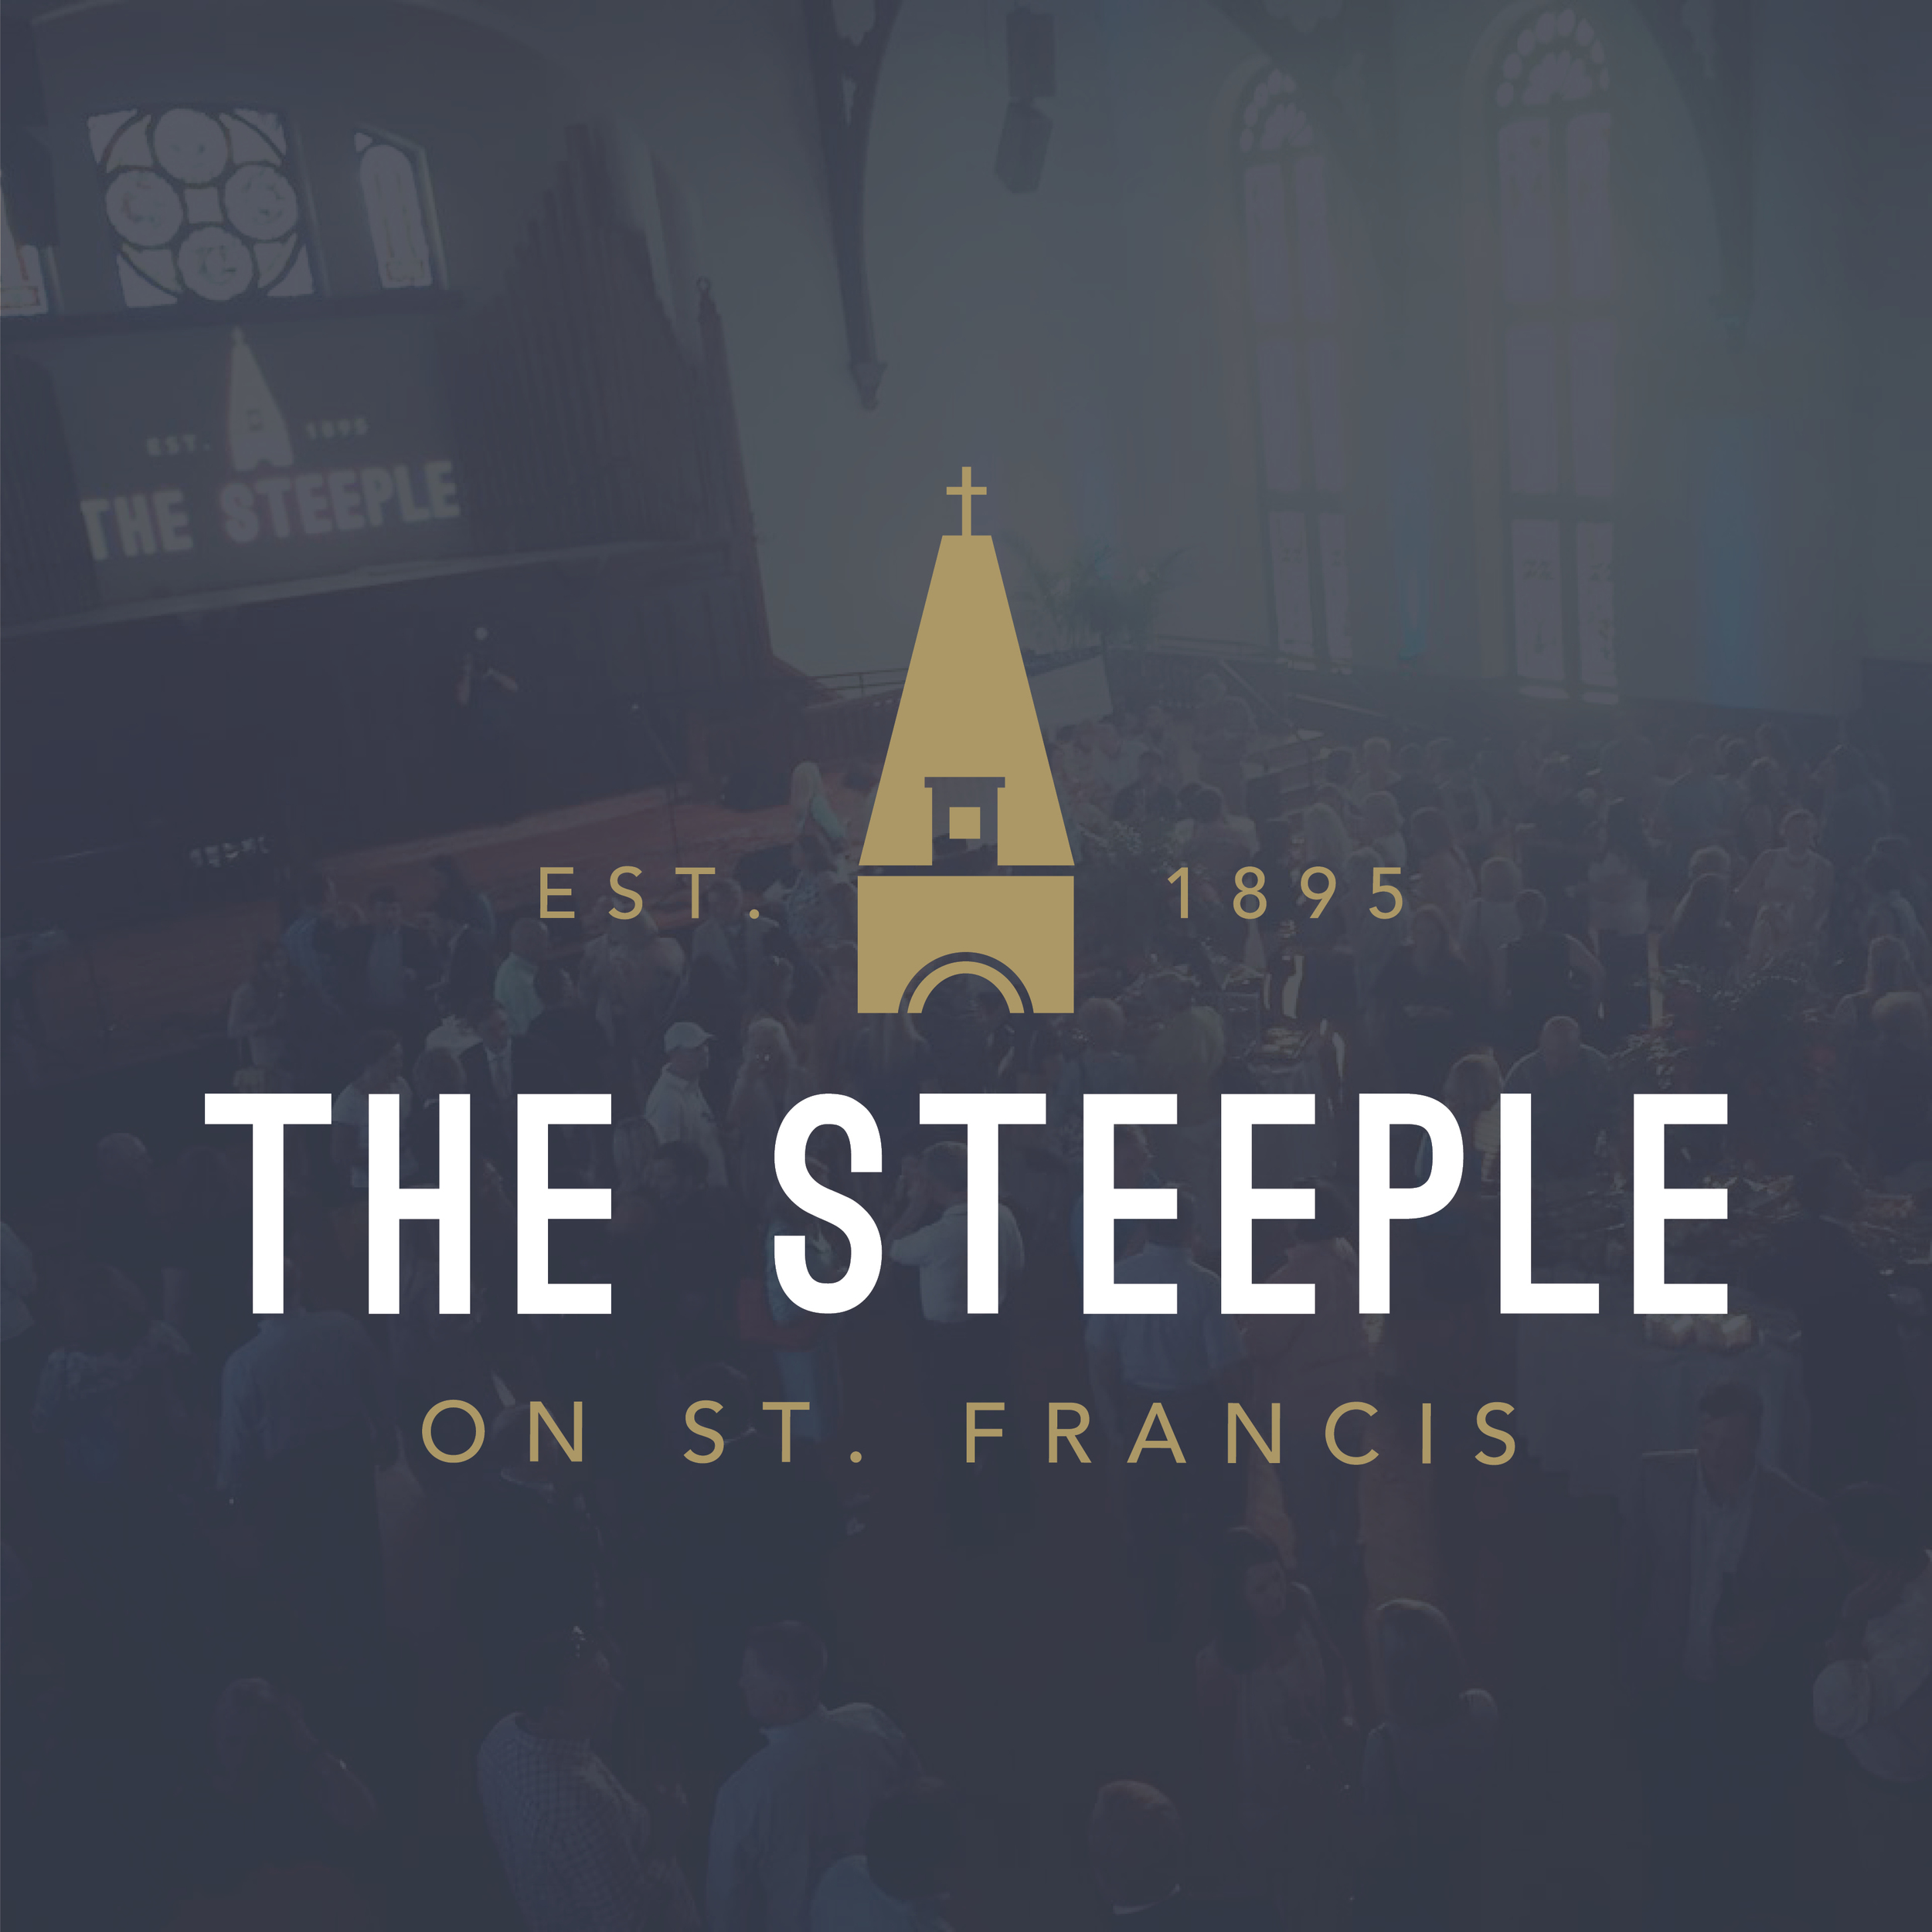 Sad I missed The Steeple's Open House, but with over 500 people in attendance...I'd say it was a hit! Visit  www.thesteeplemobile.com to learn more Mobile's most inspired new space.